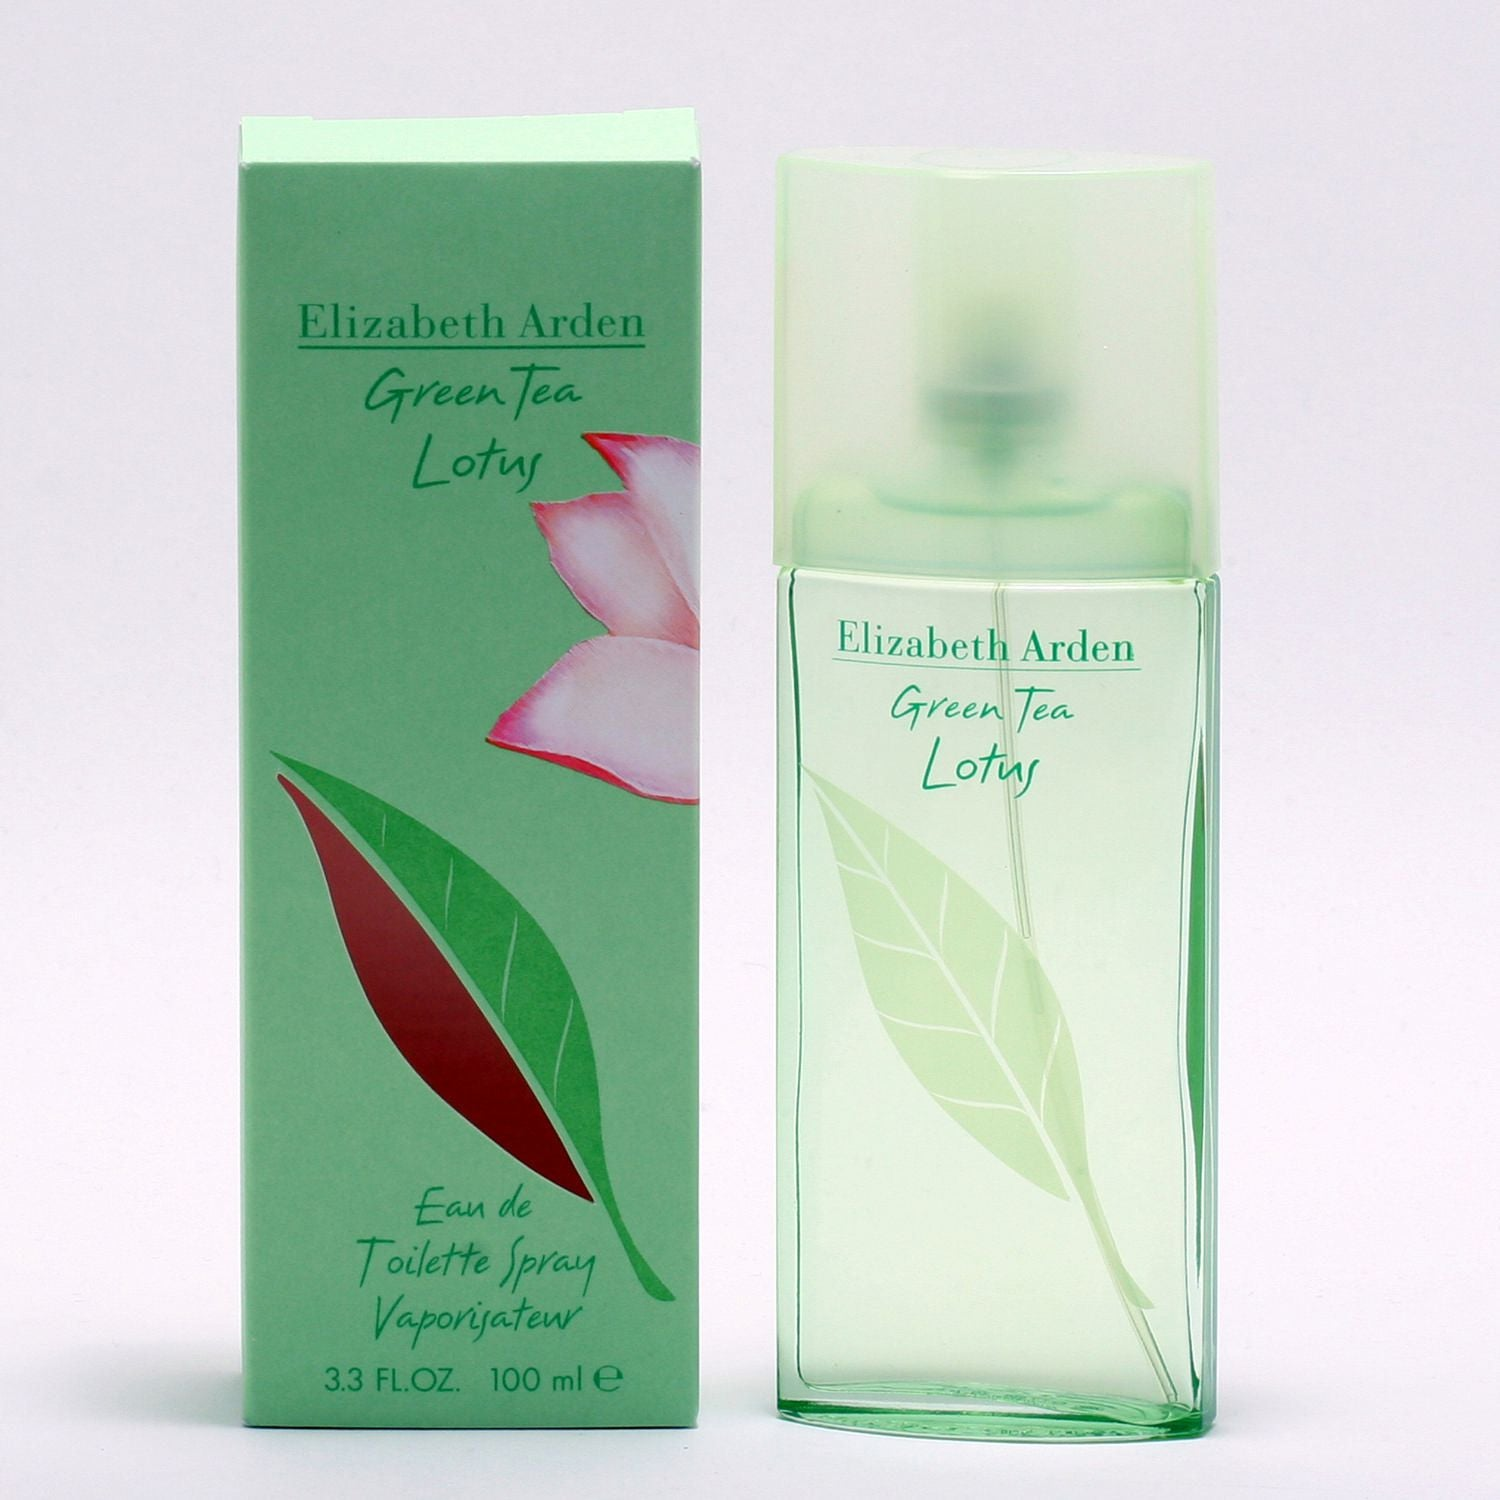 Elizabeth Arden Green Tea Lotus EDT Spray 100mL